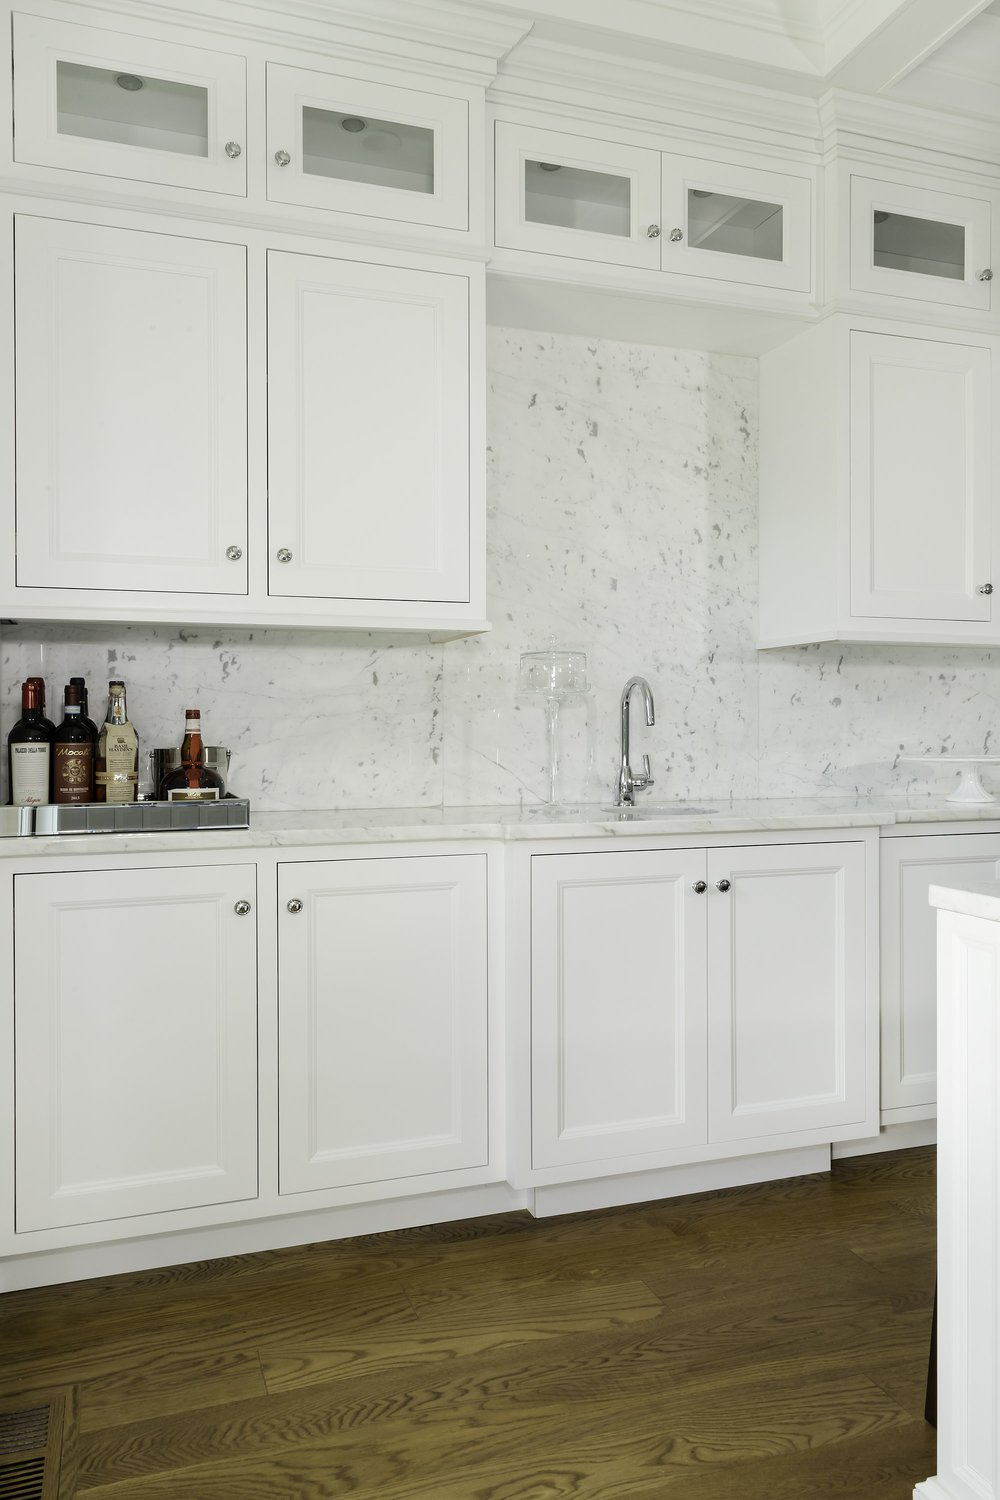 Transitional style kitchen with cabinets and single hand faucet